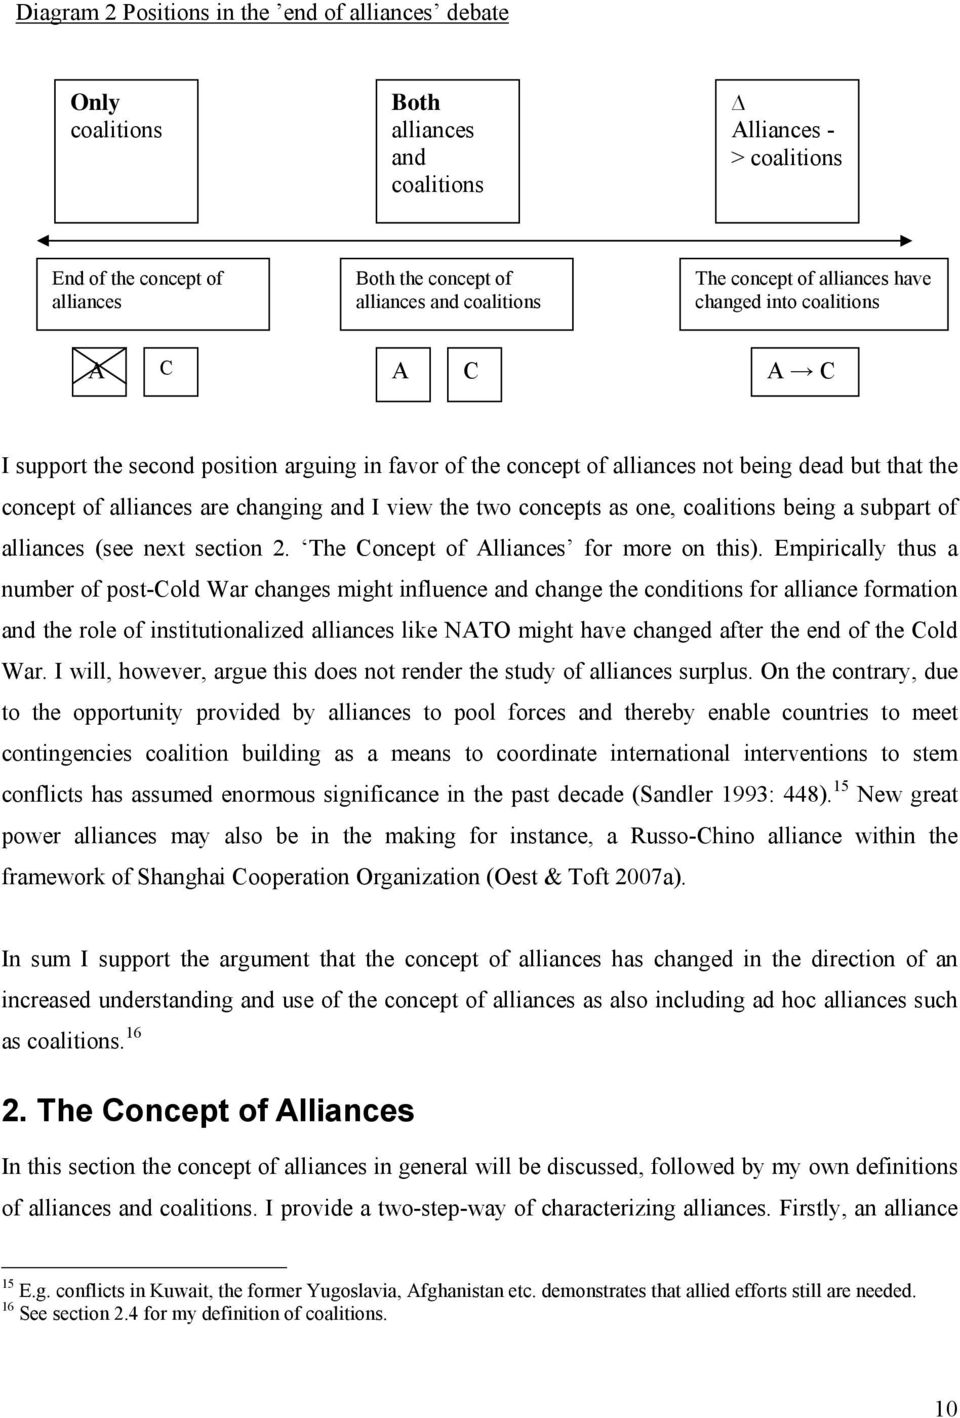 changing and I view the two concepts as one, coalitions being a subpart of alliances (see next section 2. The Concept of Alliances for more on this).